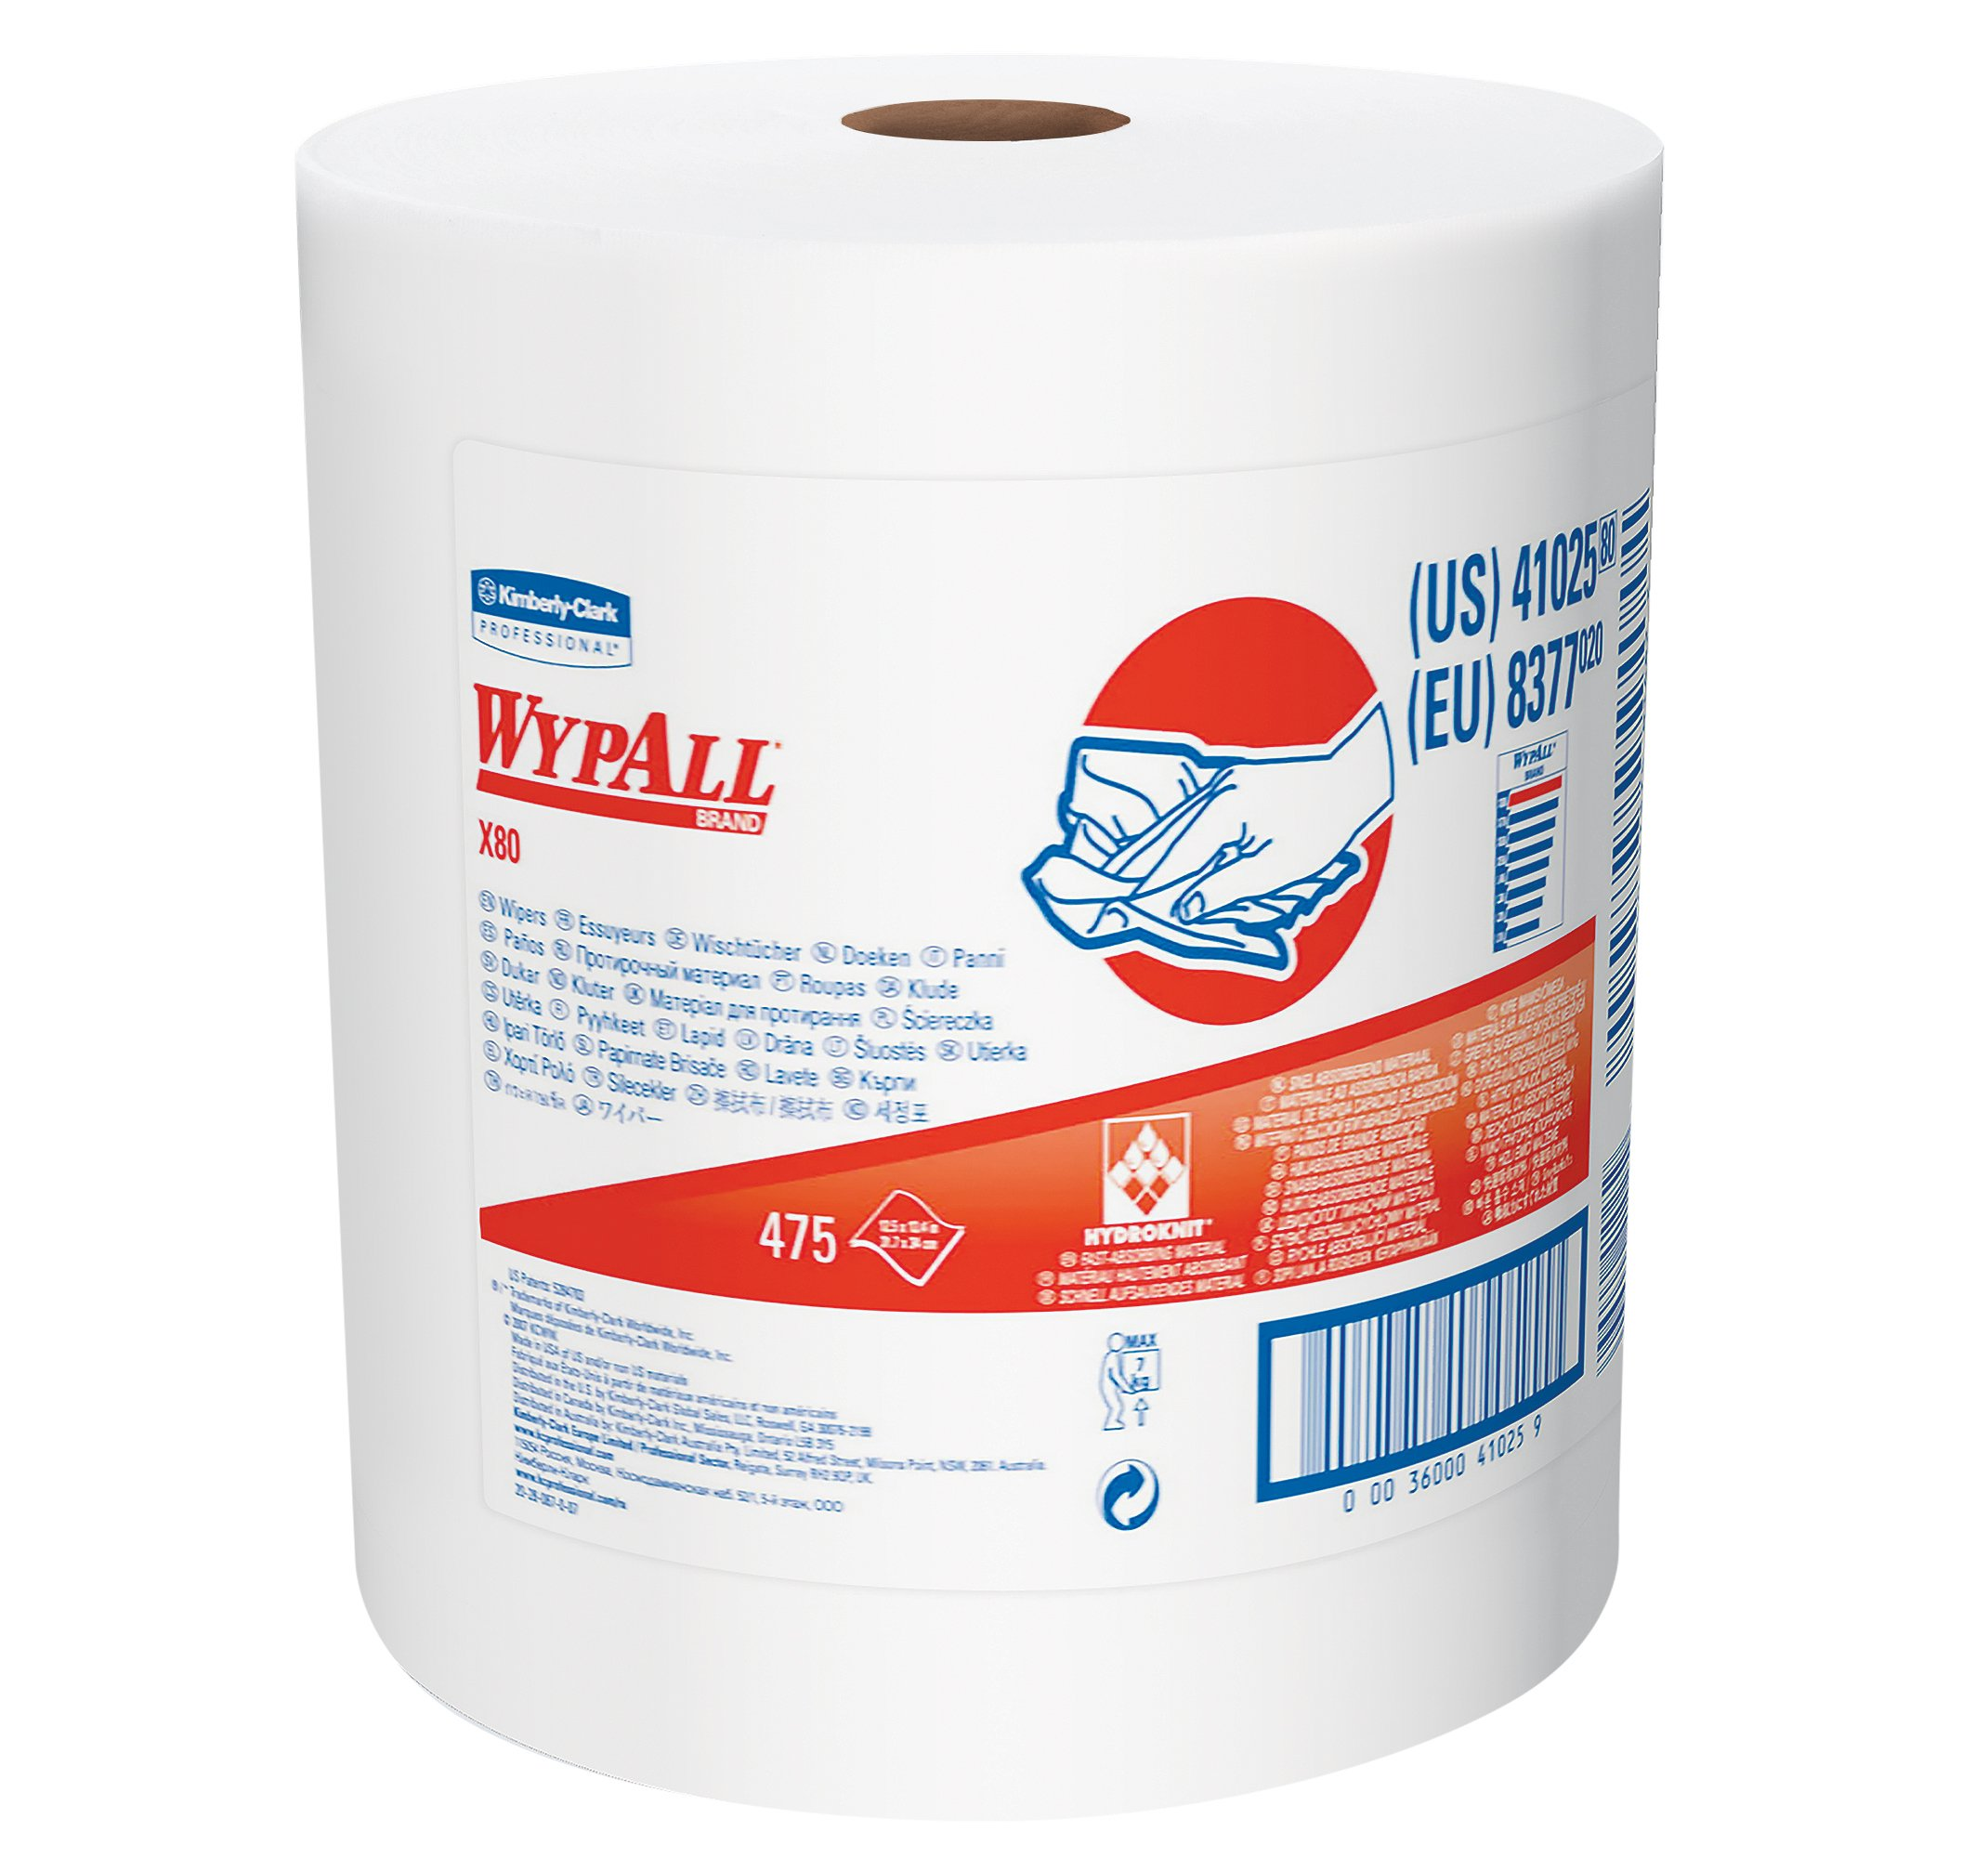 Wypall X80 Reusable Wipes (41025), Extended Use Cloths Jumbo Roll, White, 475 Sheets/Roll; 1 Roll/Case